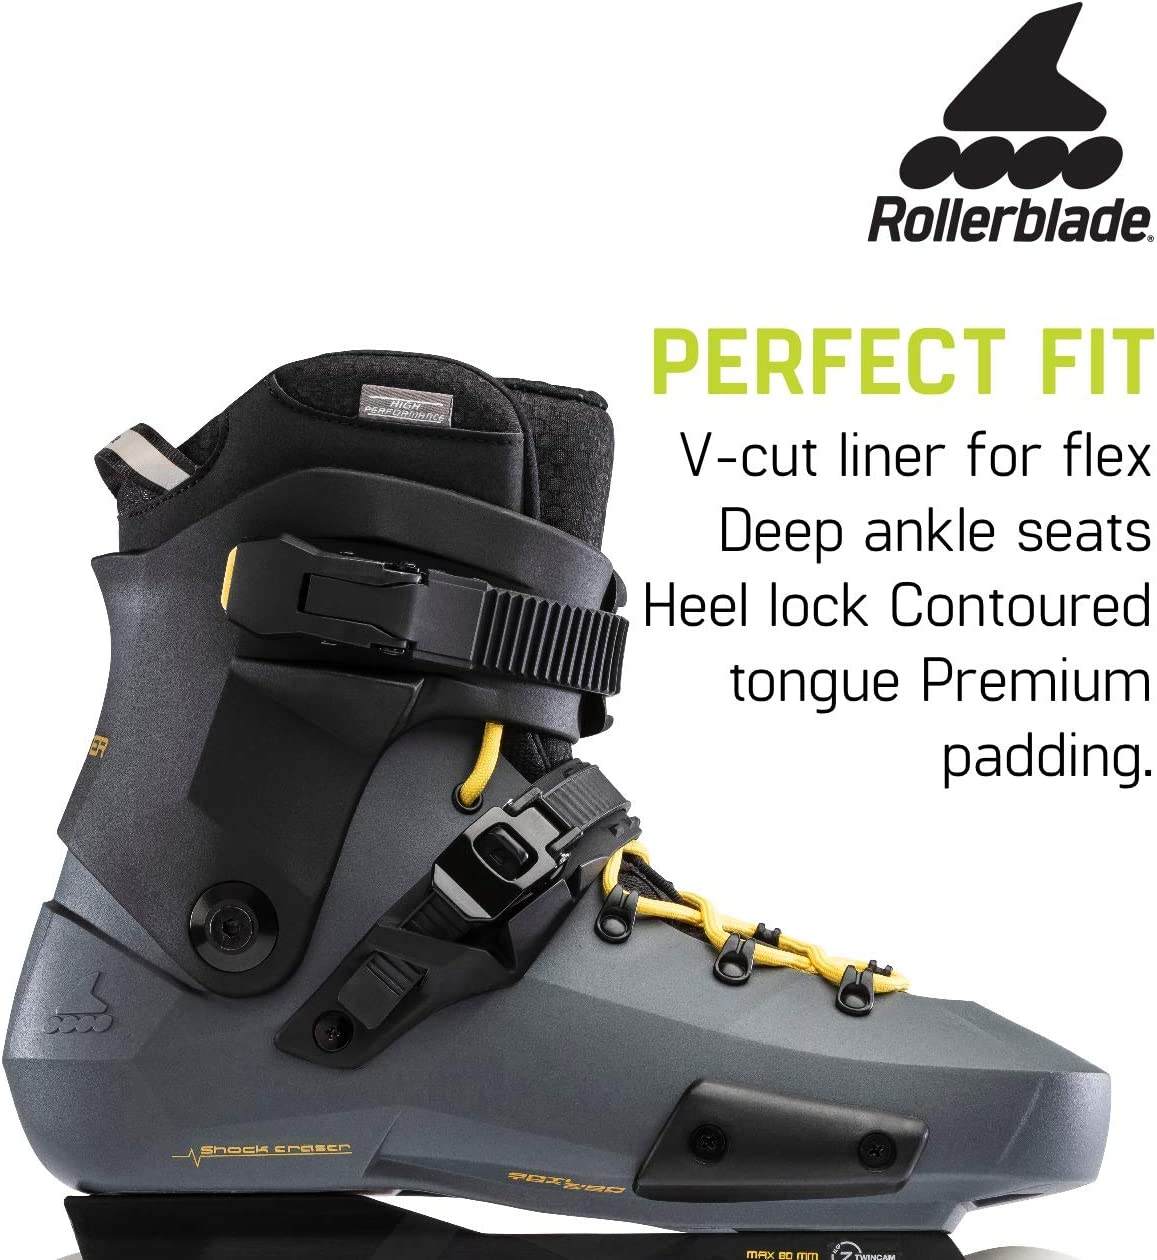 Anthracite and Yellow High Performance Inline Skates Rollerblade Twister Edge Mens Adult Fitness Inline Skate